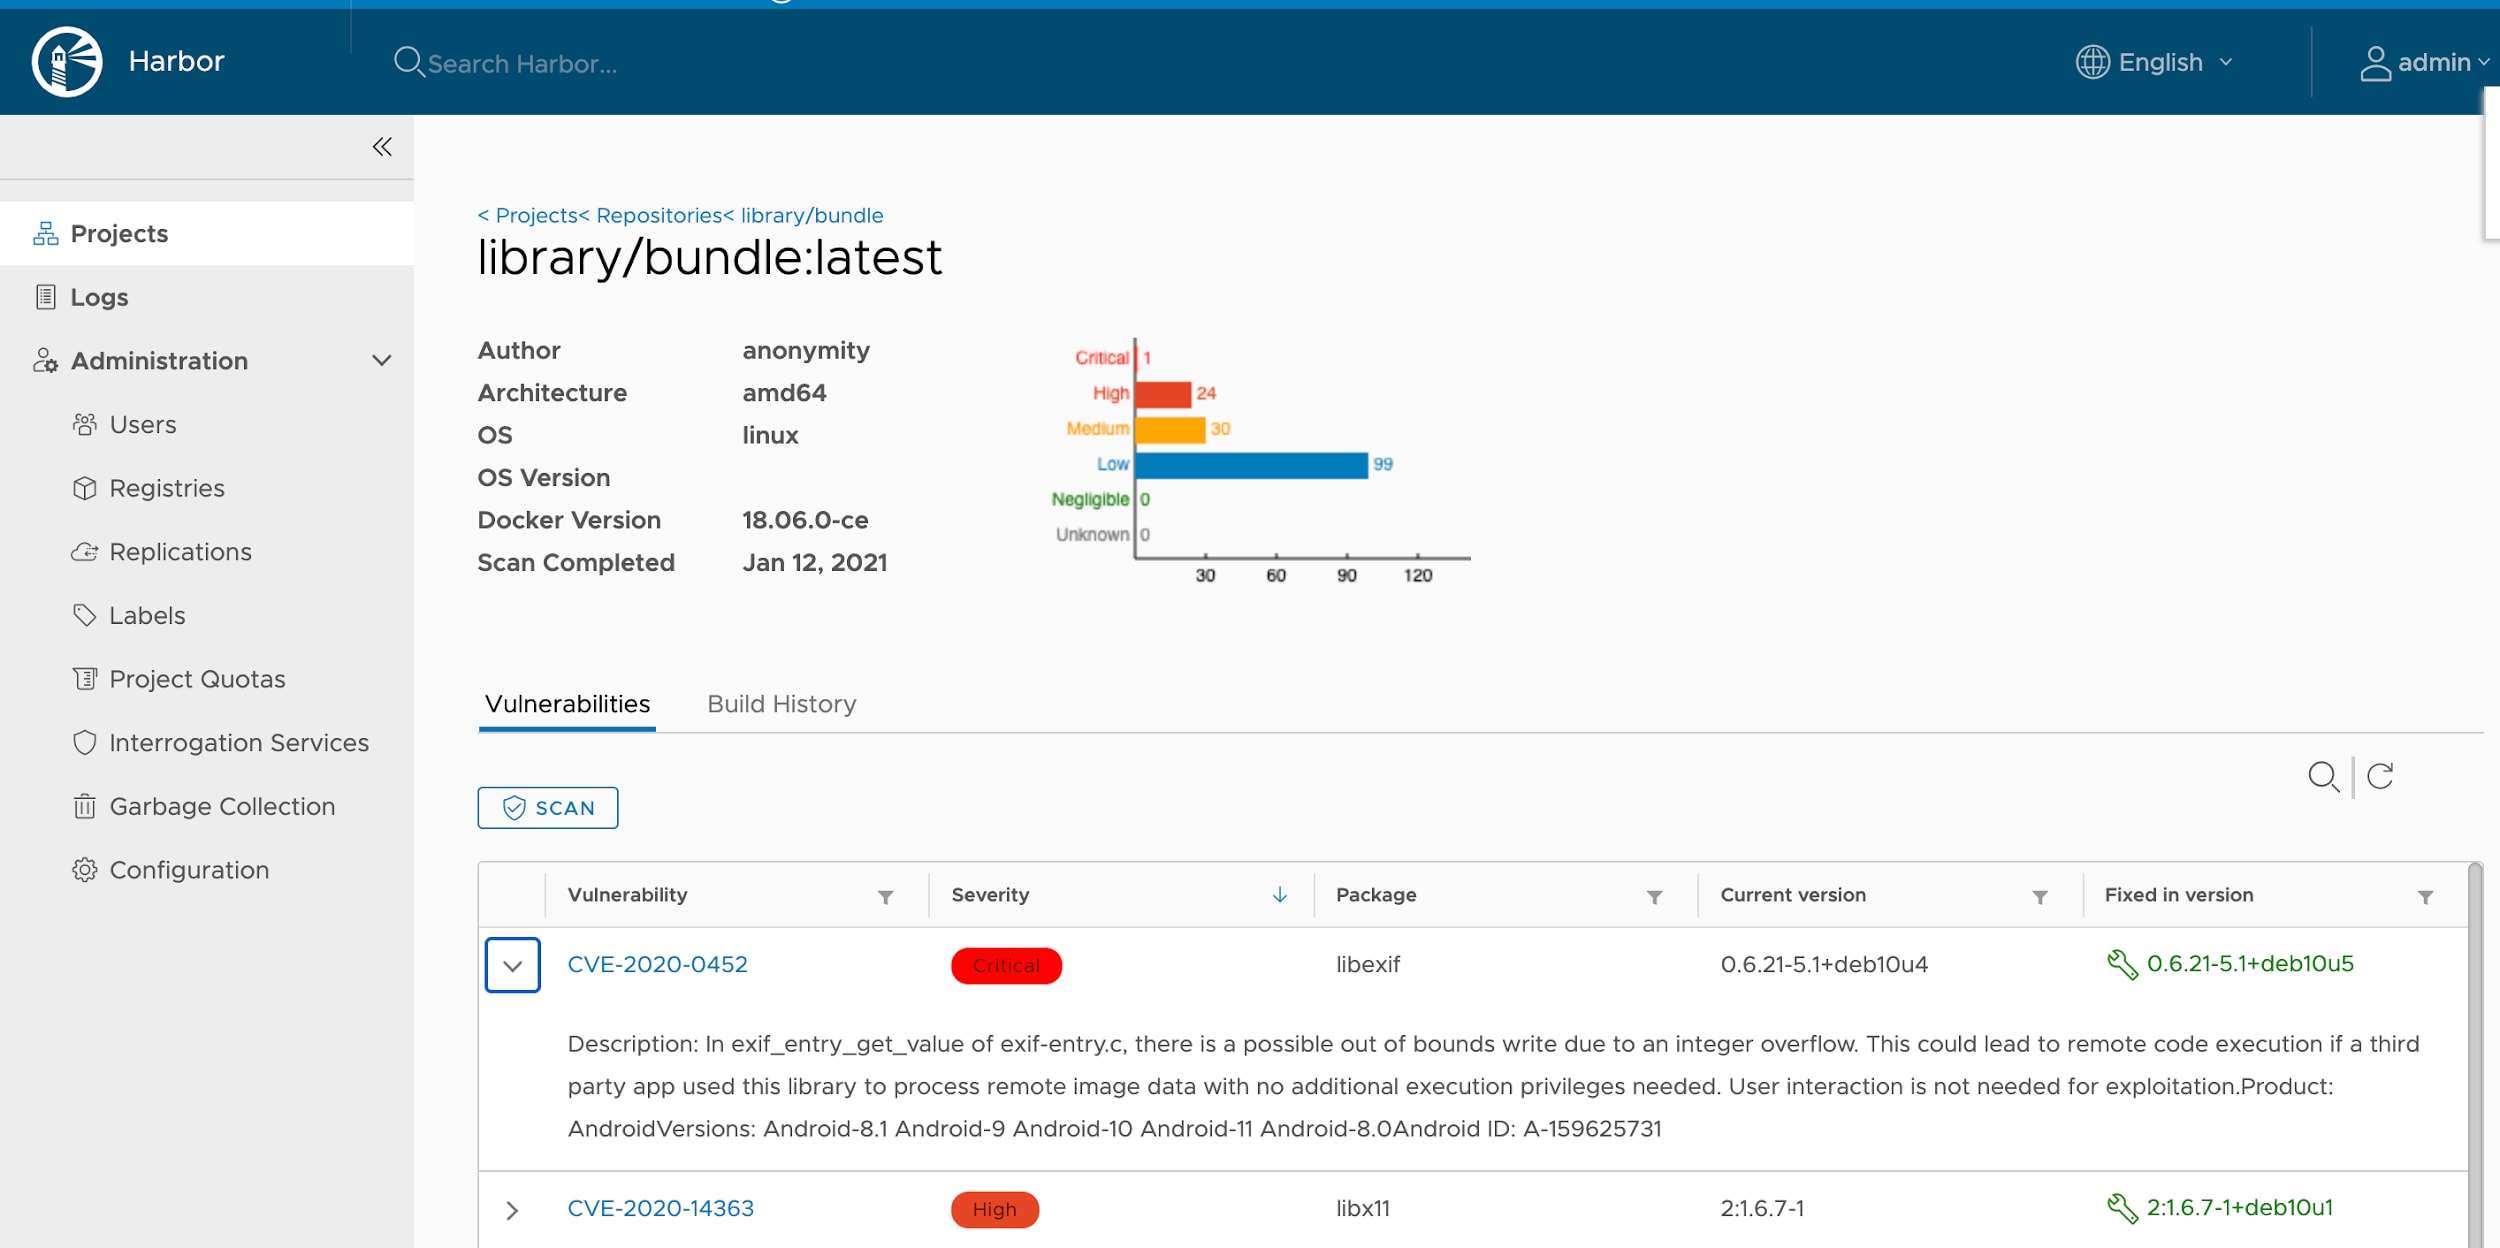 Vulnerability scan results from Prisma Cloud shown in the Harbor UI